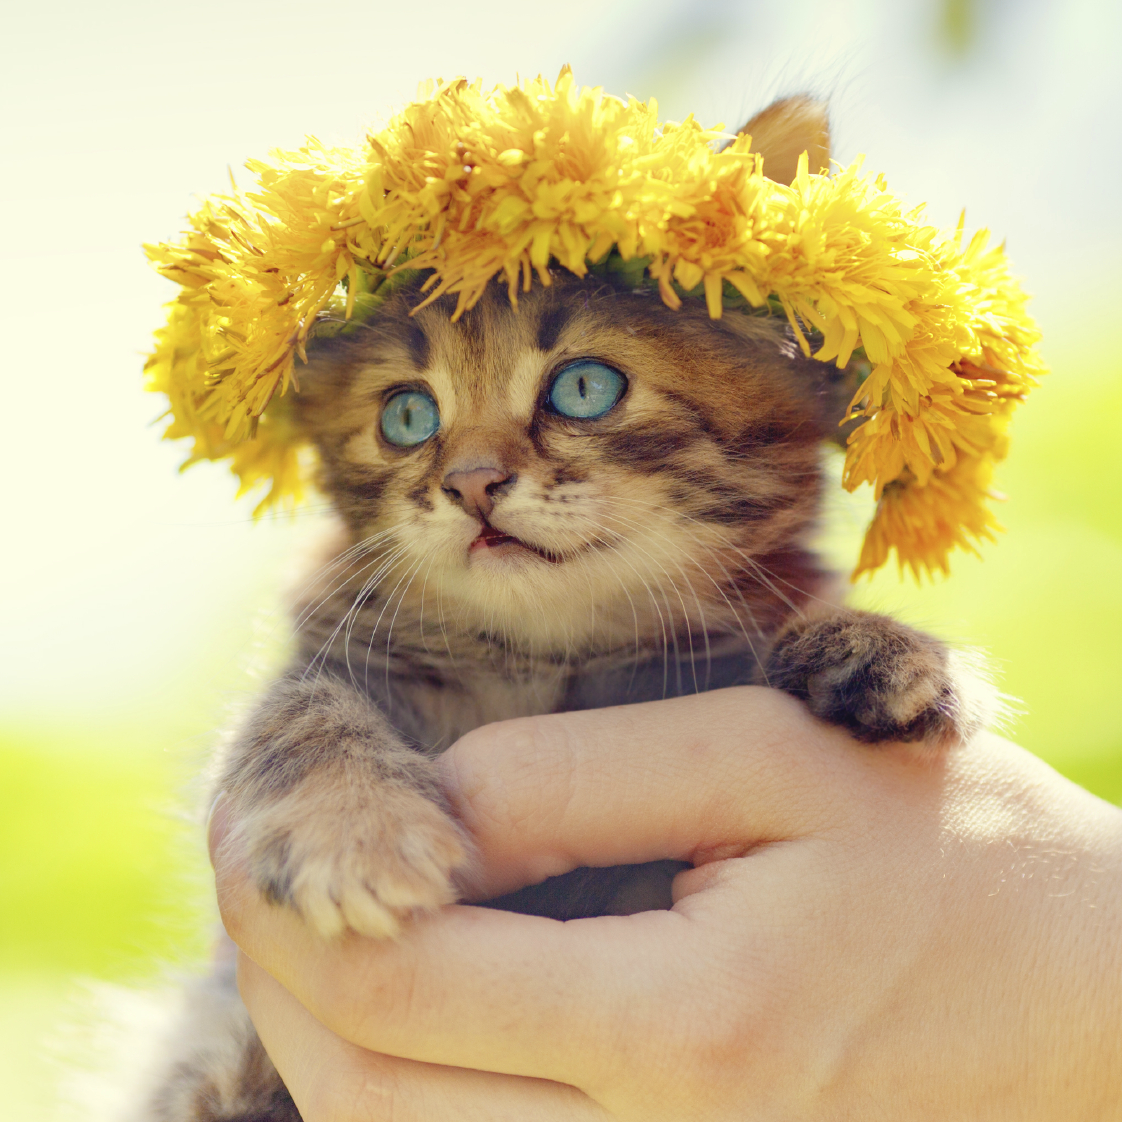 100 Years Of Kitten Beauty Is The Cutest Tribute To Cats Worldwide Cute Animals Kittens Cutest Cats